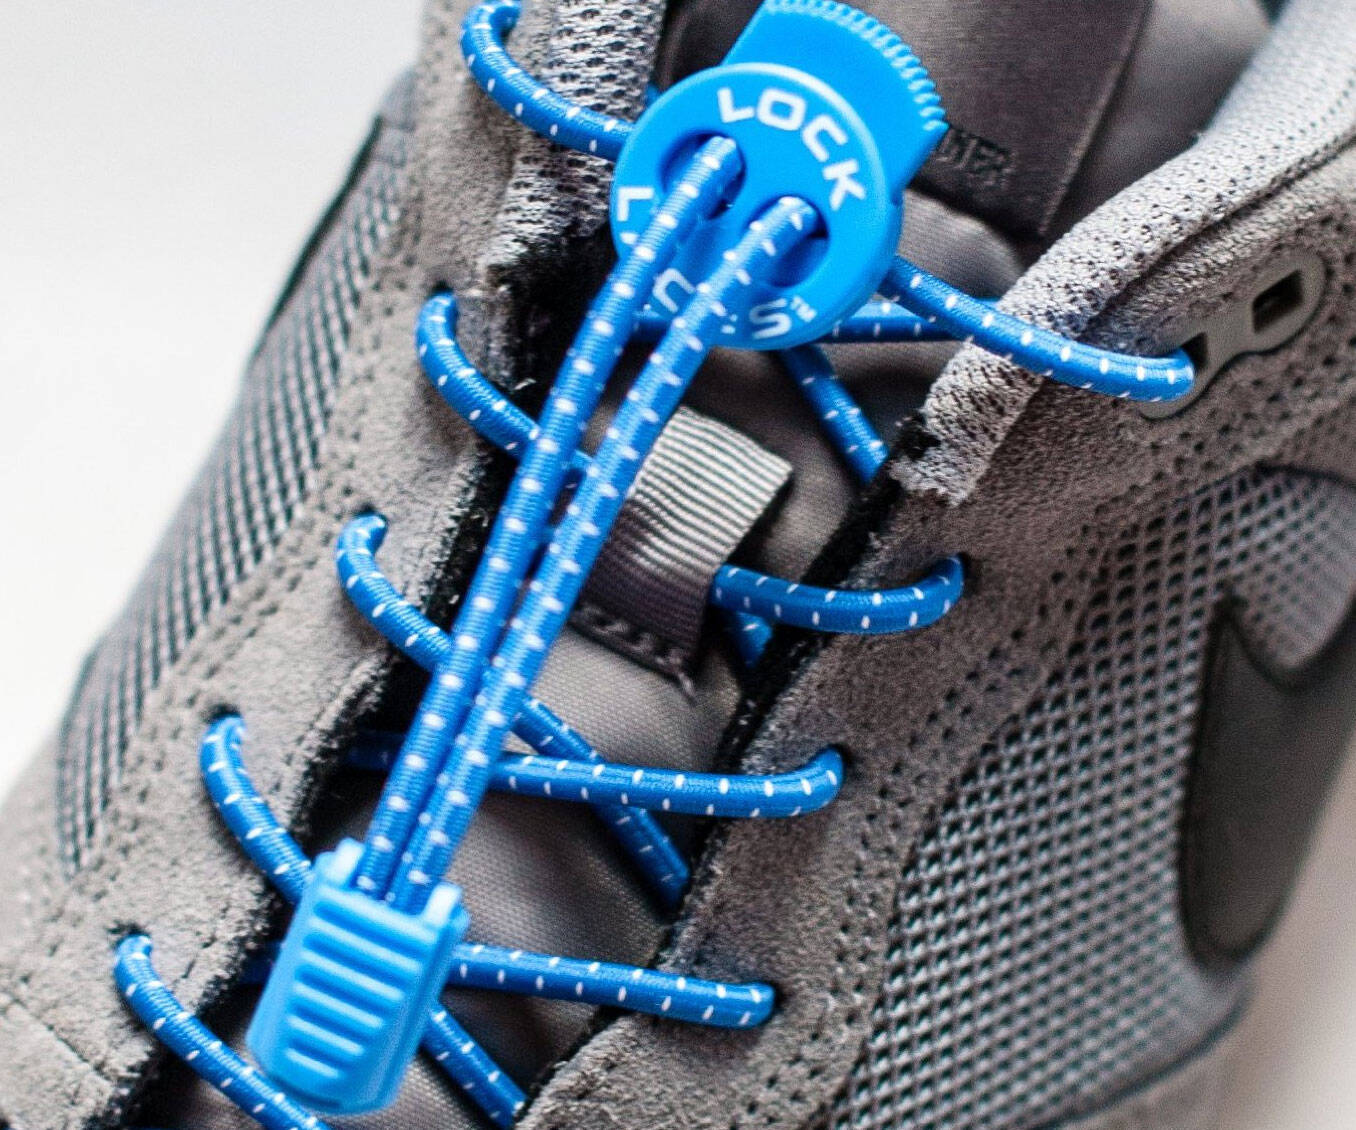 Shoelace Fastening System - http://coolthings.us